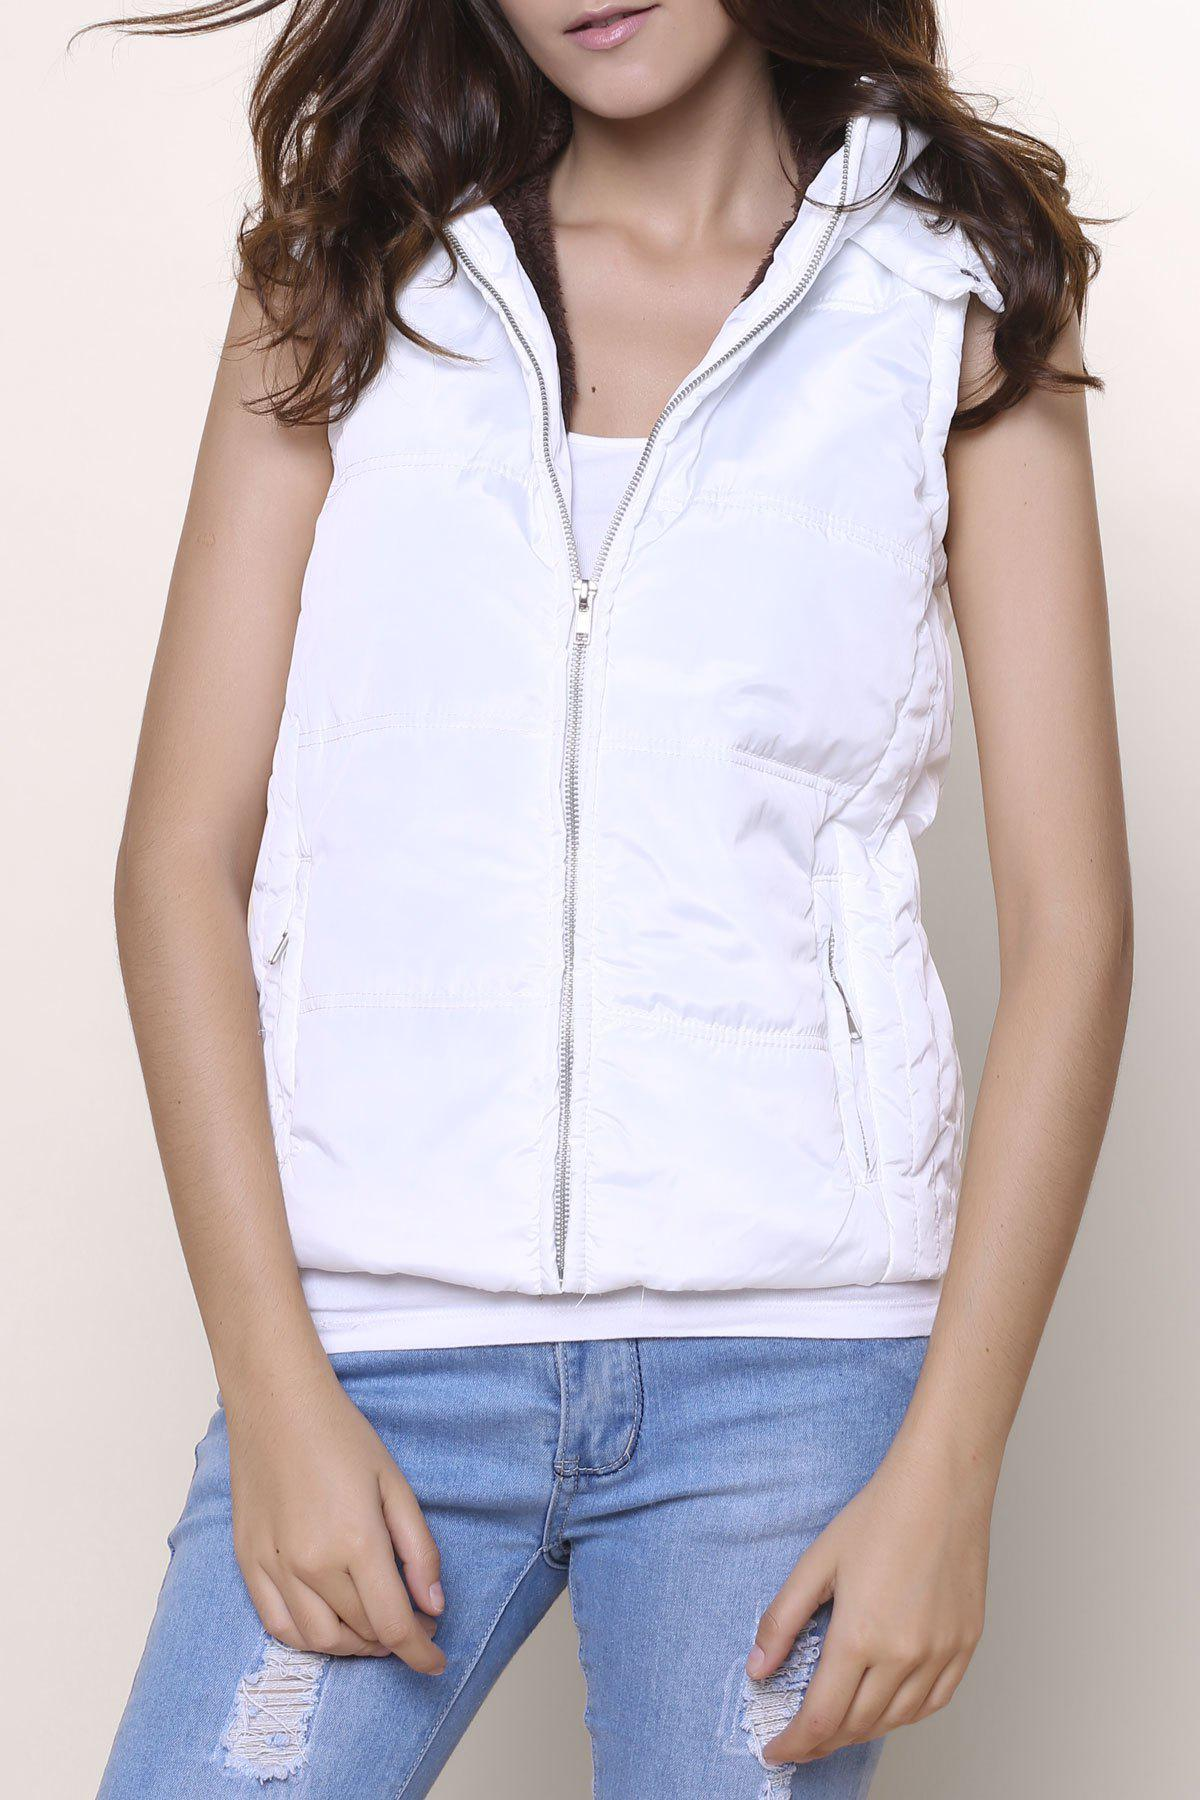 Stylish Sleeveless Hooded Zip Up Women' Padded Waistcoat - Blanc M